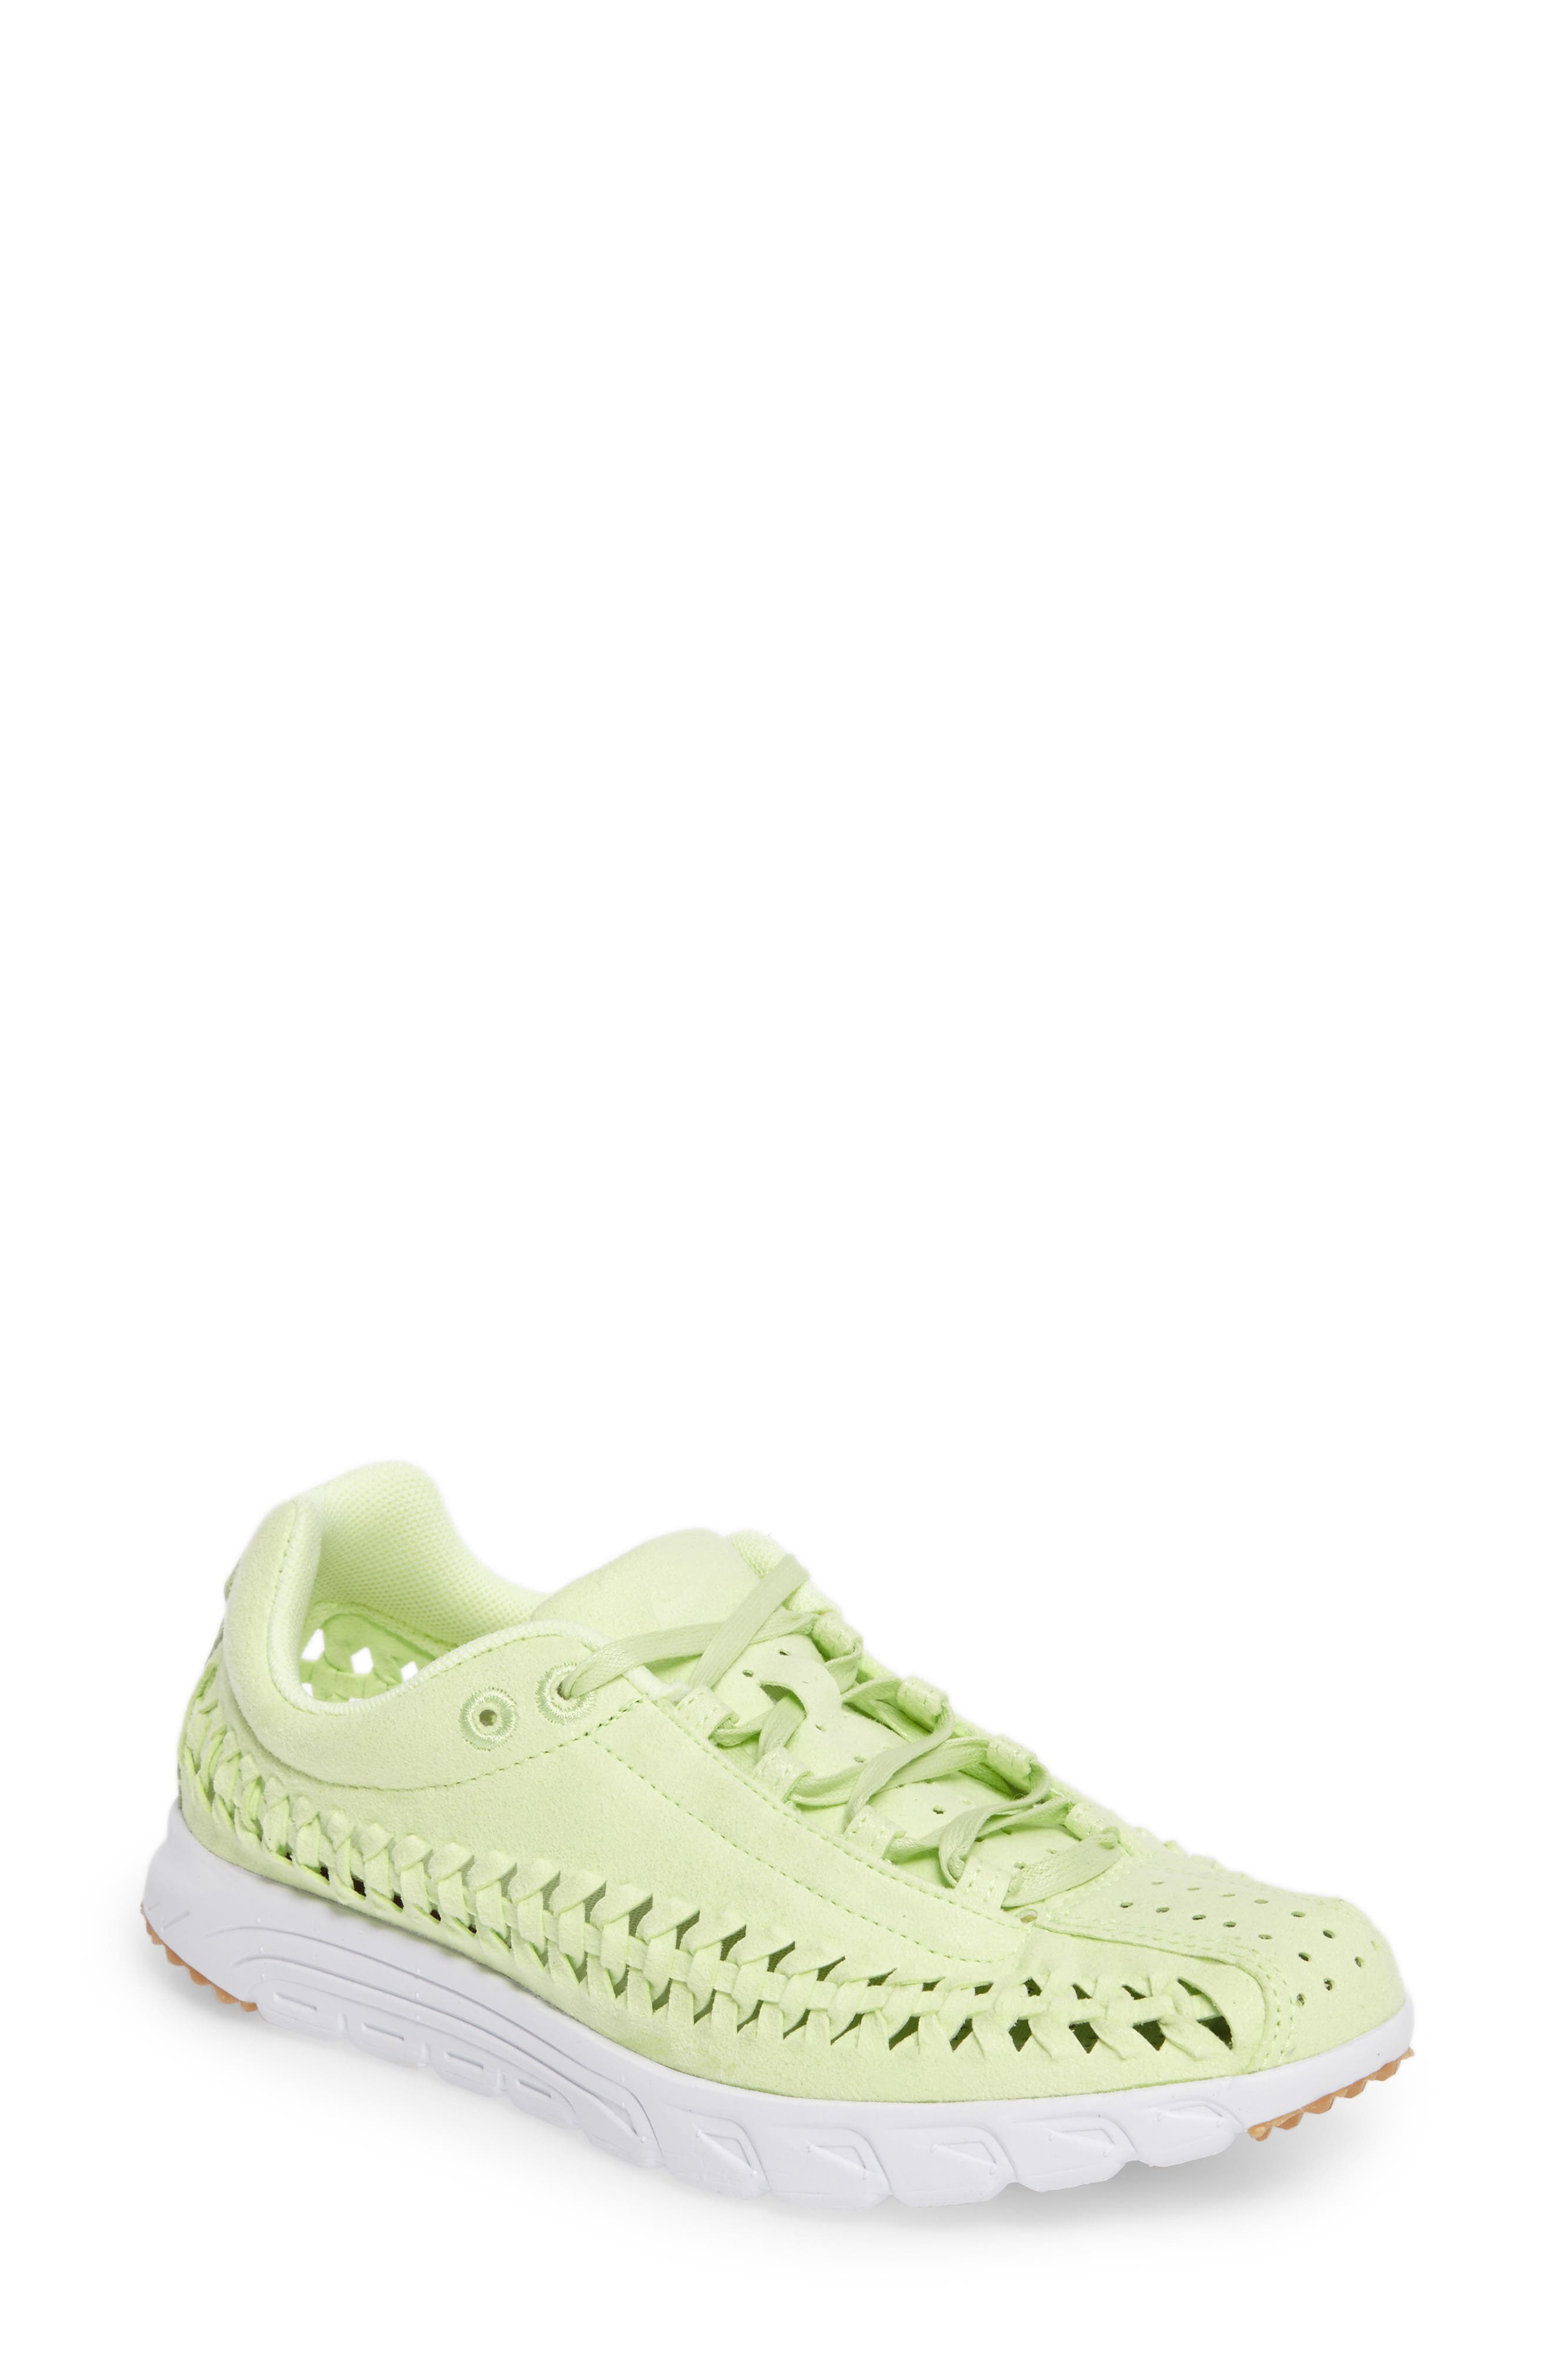 Mayfly Woven QS Sneaker,                         Main,                         color, 301